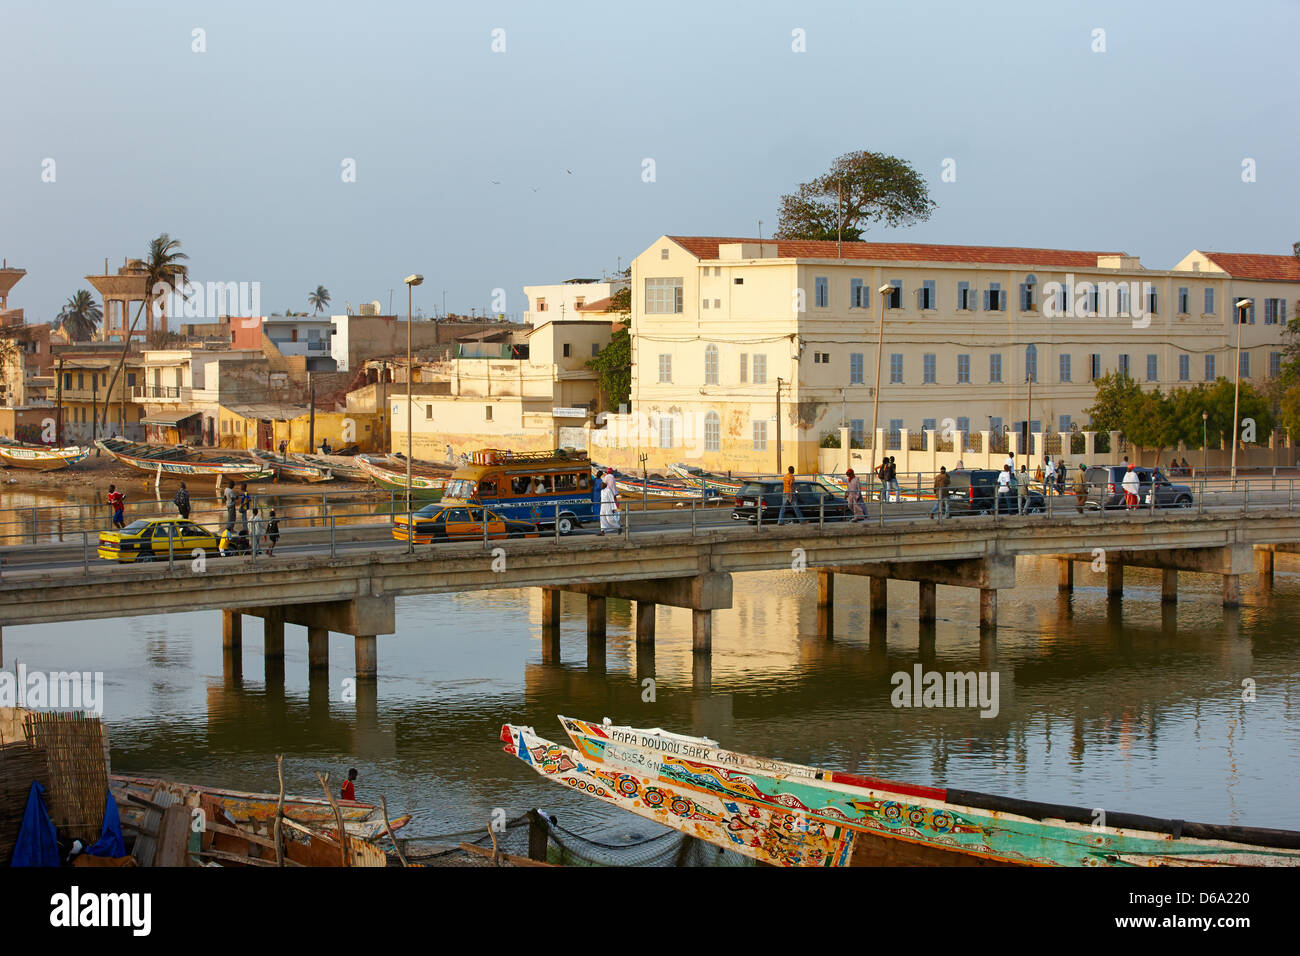 Pont Mustapha Malick Gaye Bridge, Saint-Louis, Senegal, Africa - Stock Image